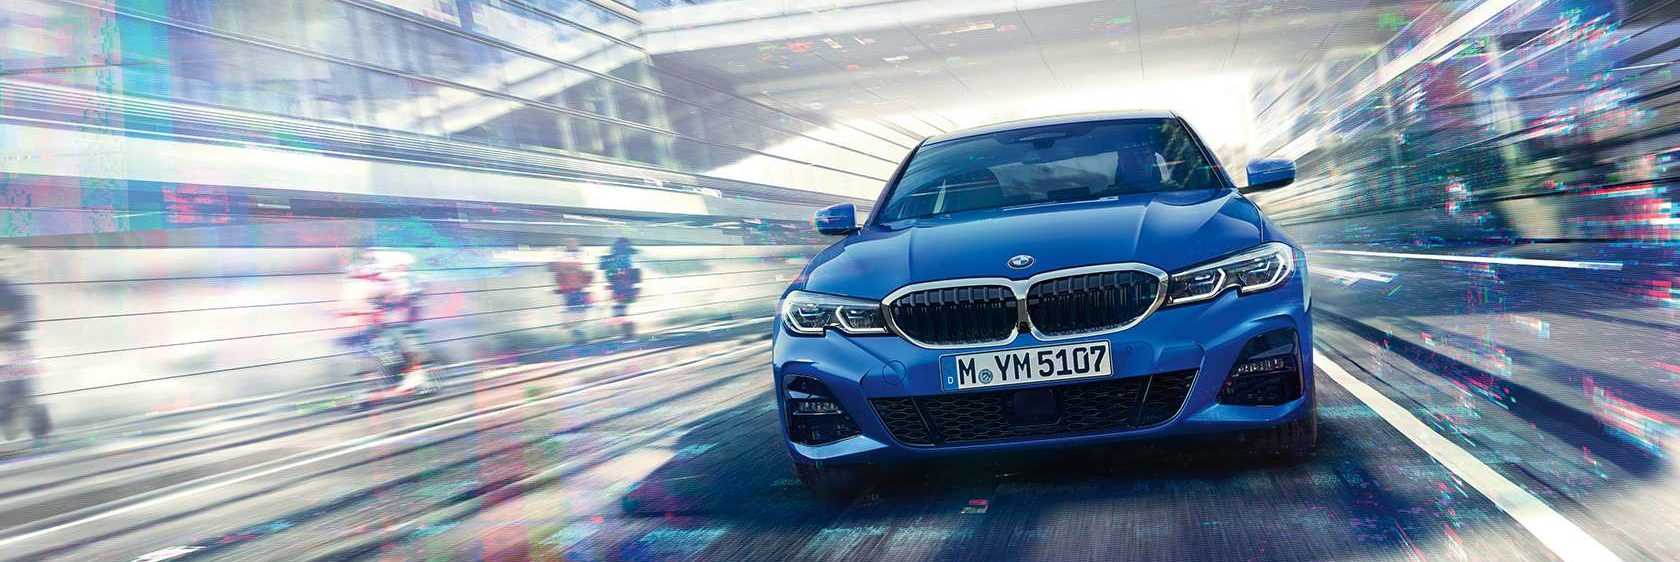 BMW 3 Series driving in a futuristic city environment